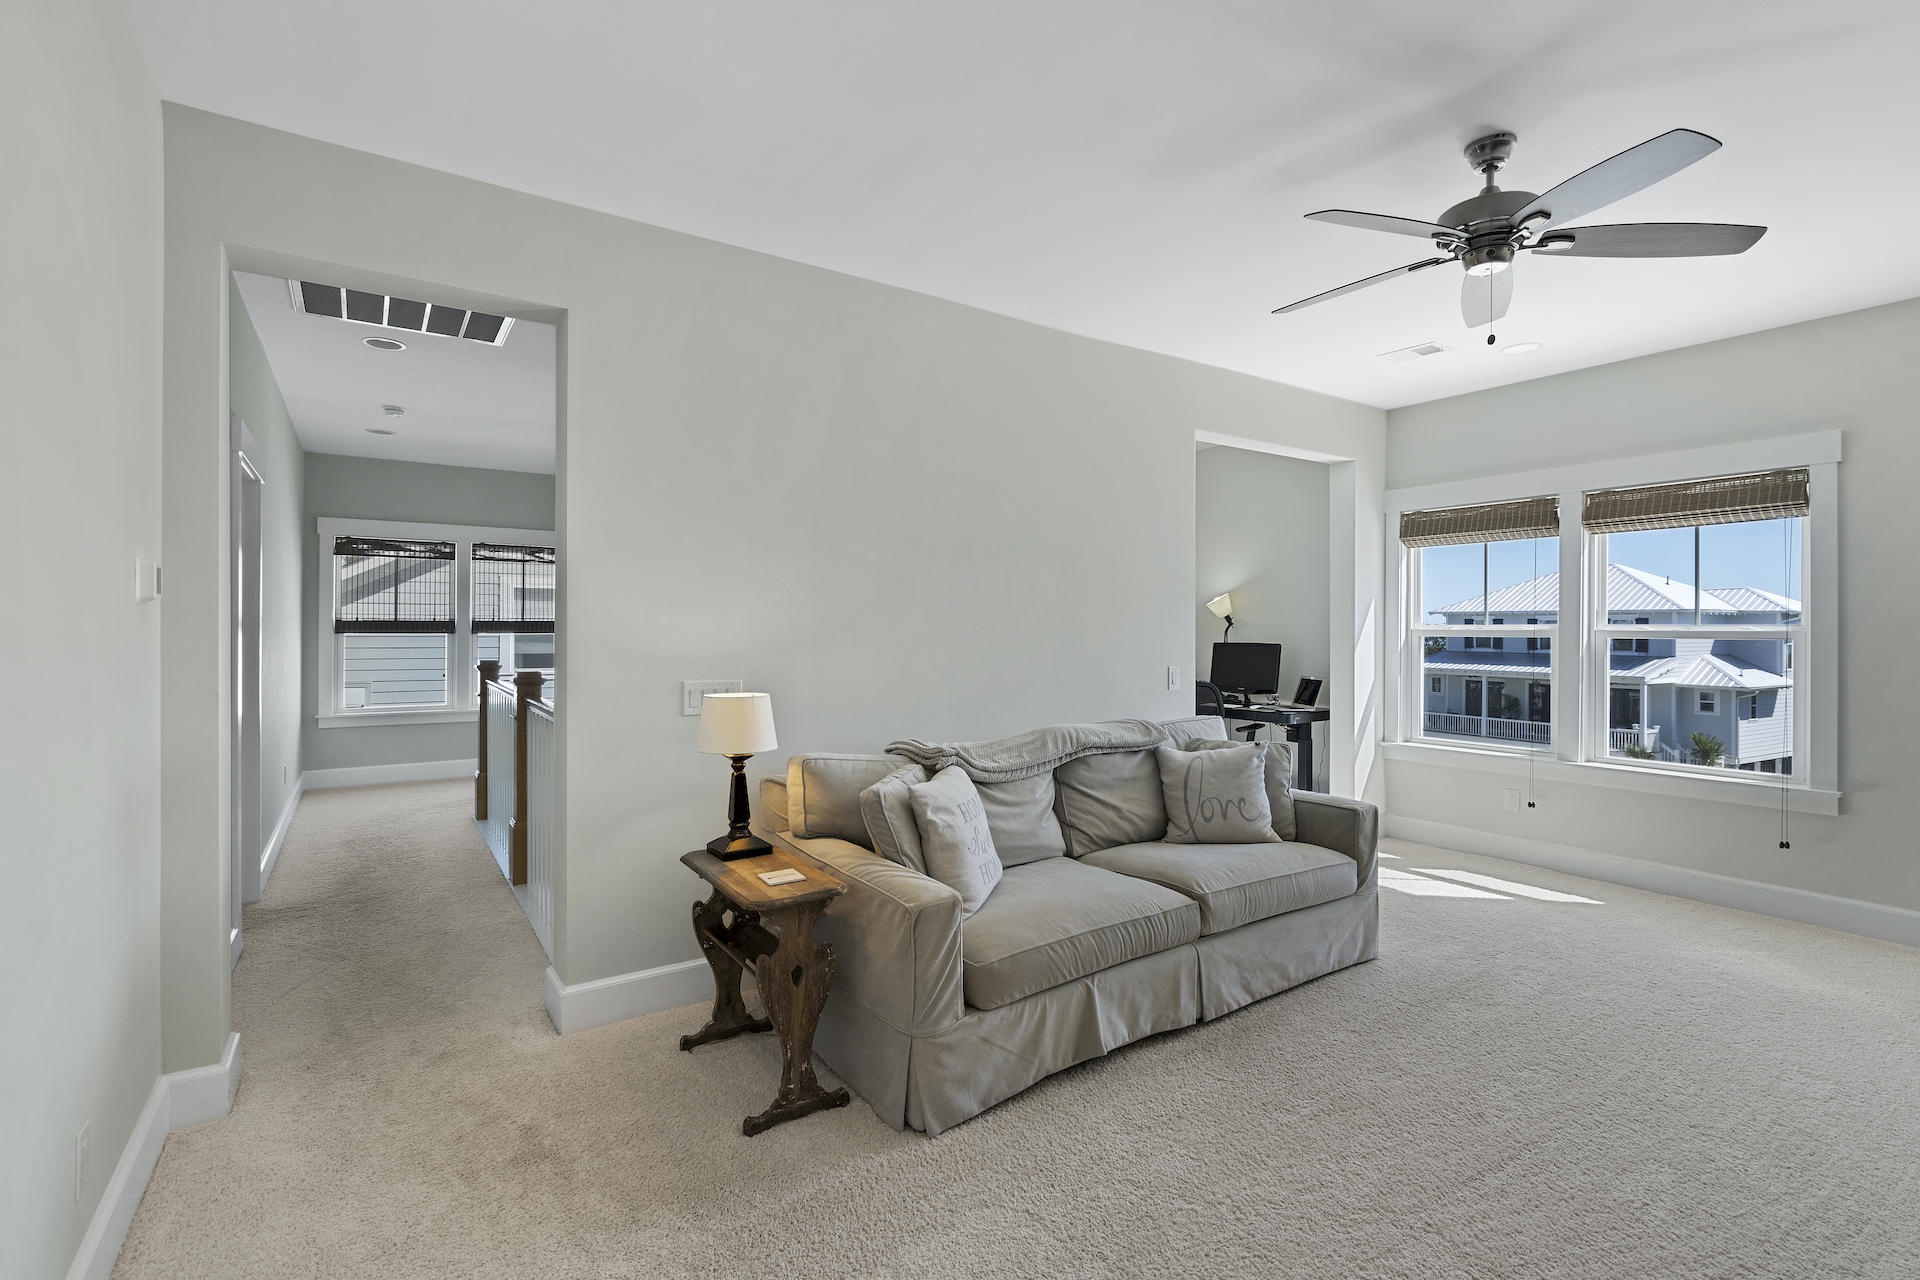 Stratton by the Sound Homes For Sale - 1509 Menhaden, Mount Pleasant, SC - 13